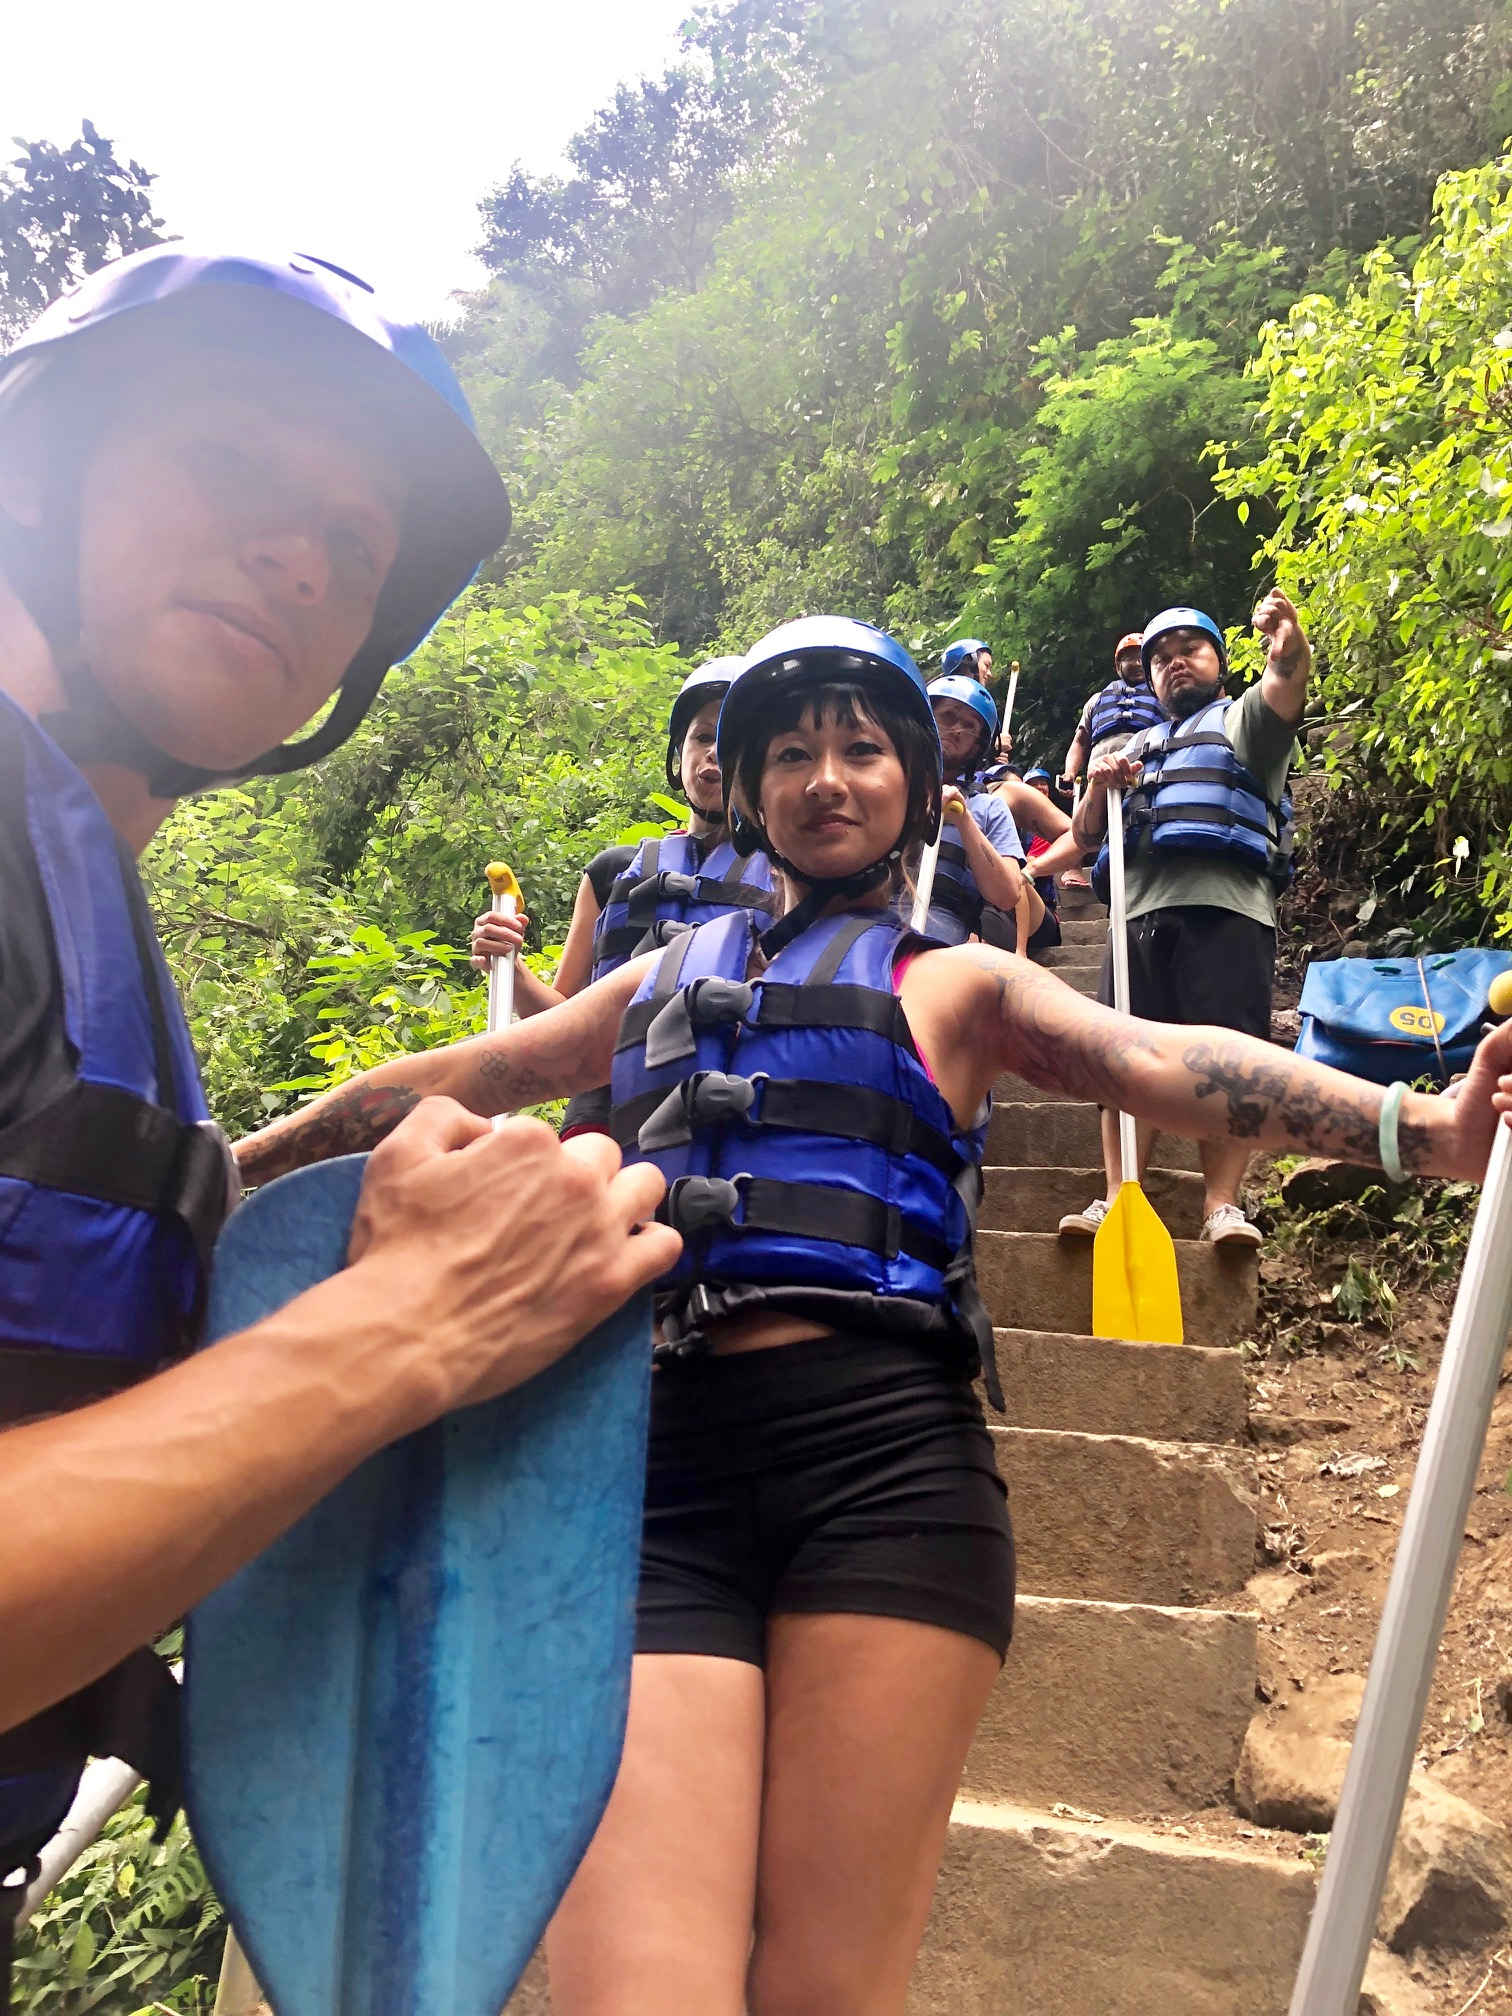 See me back there? I gave it a thumbs down cuz I didn't want do it at first but I didn't want fear to hold me back of this great memory in Bali together.